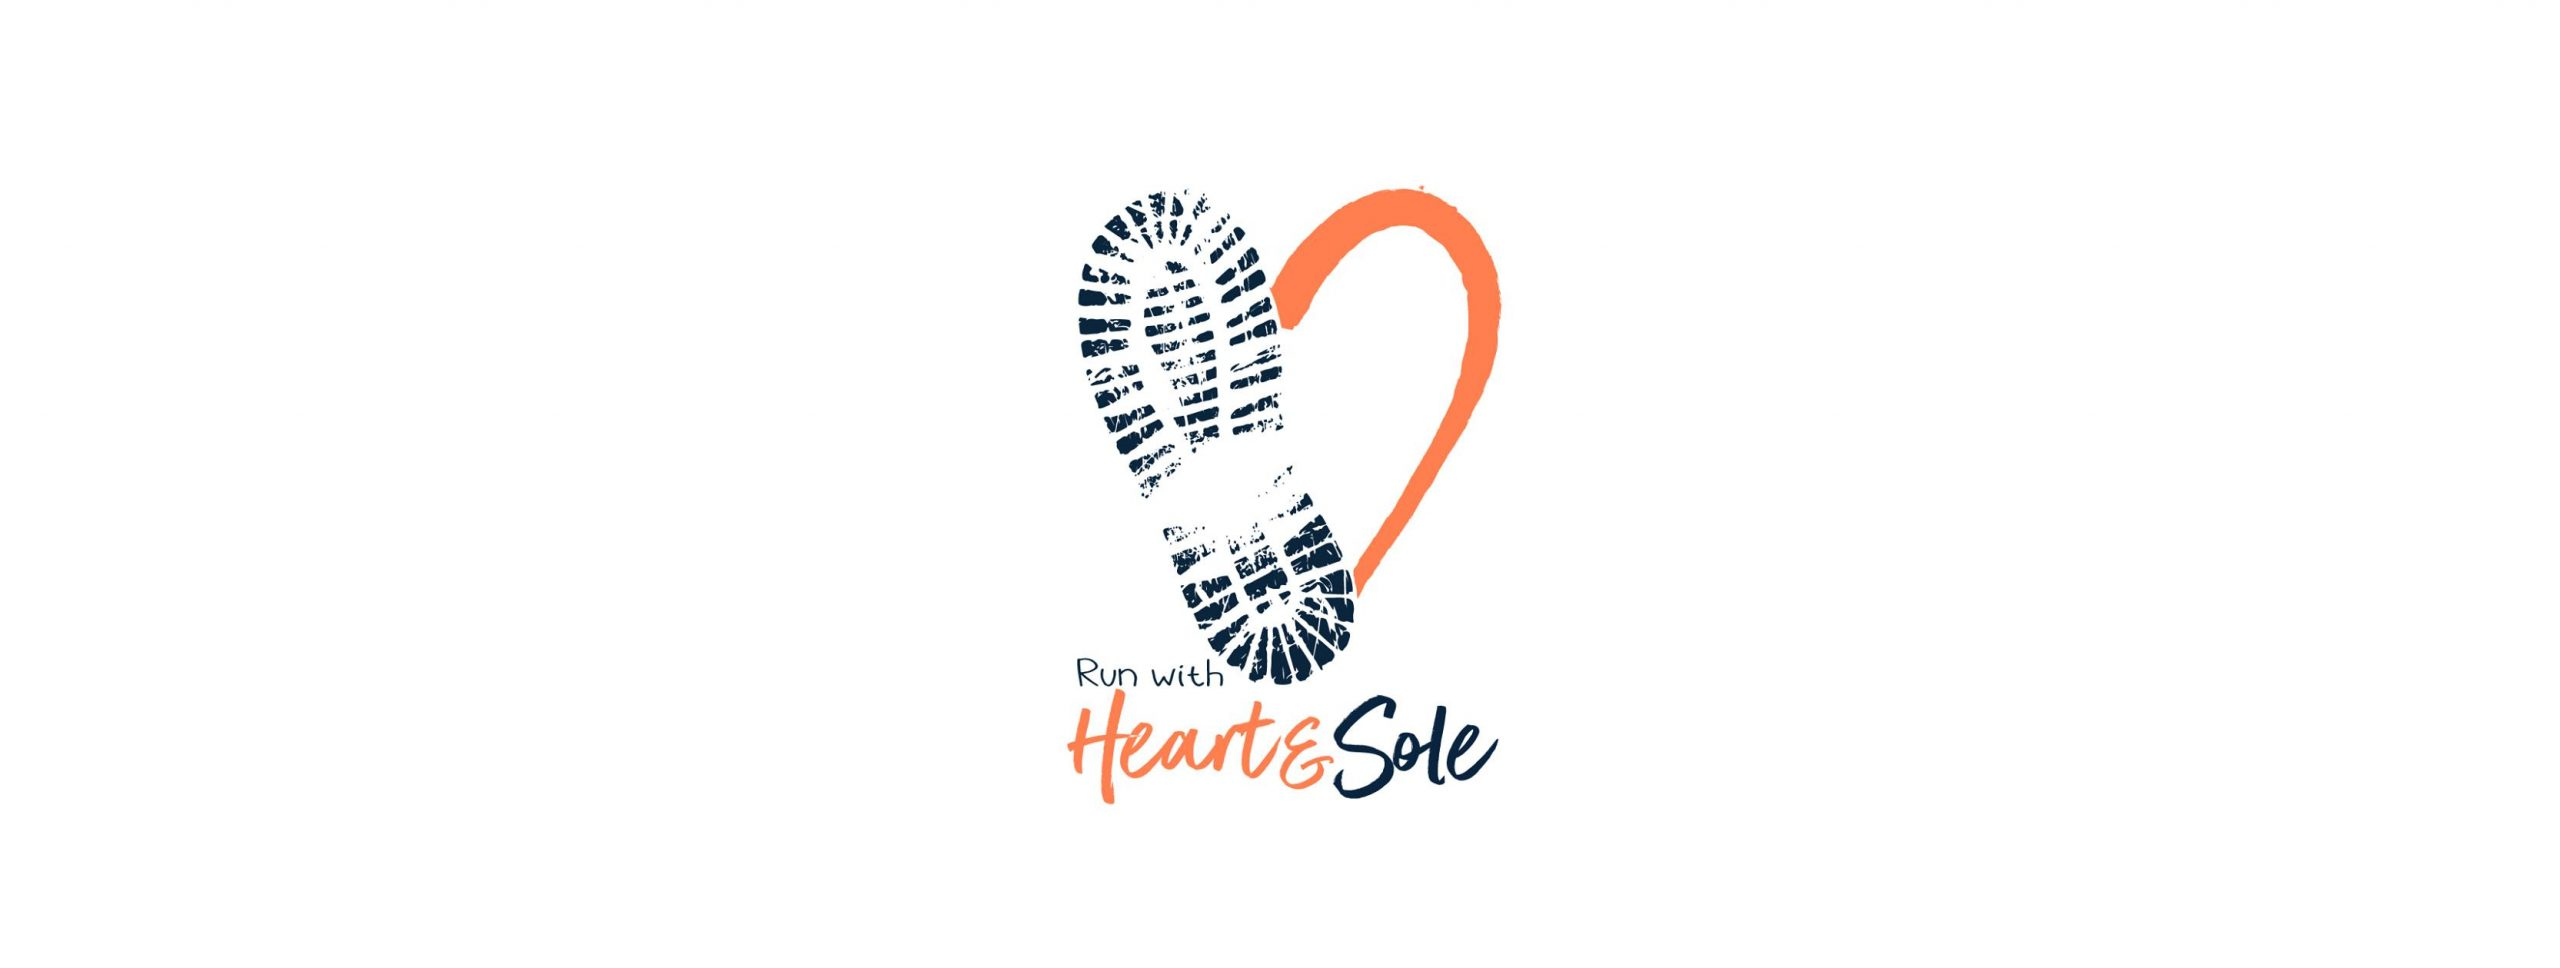 Run with Heart and Sole